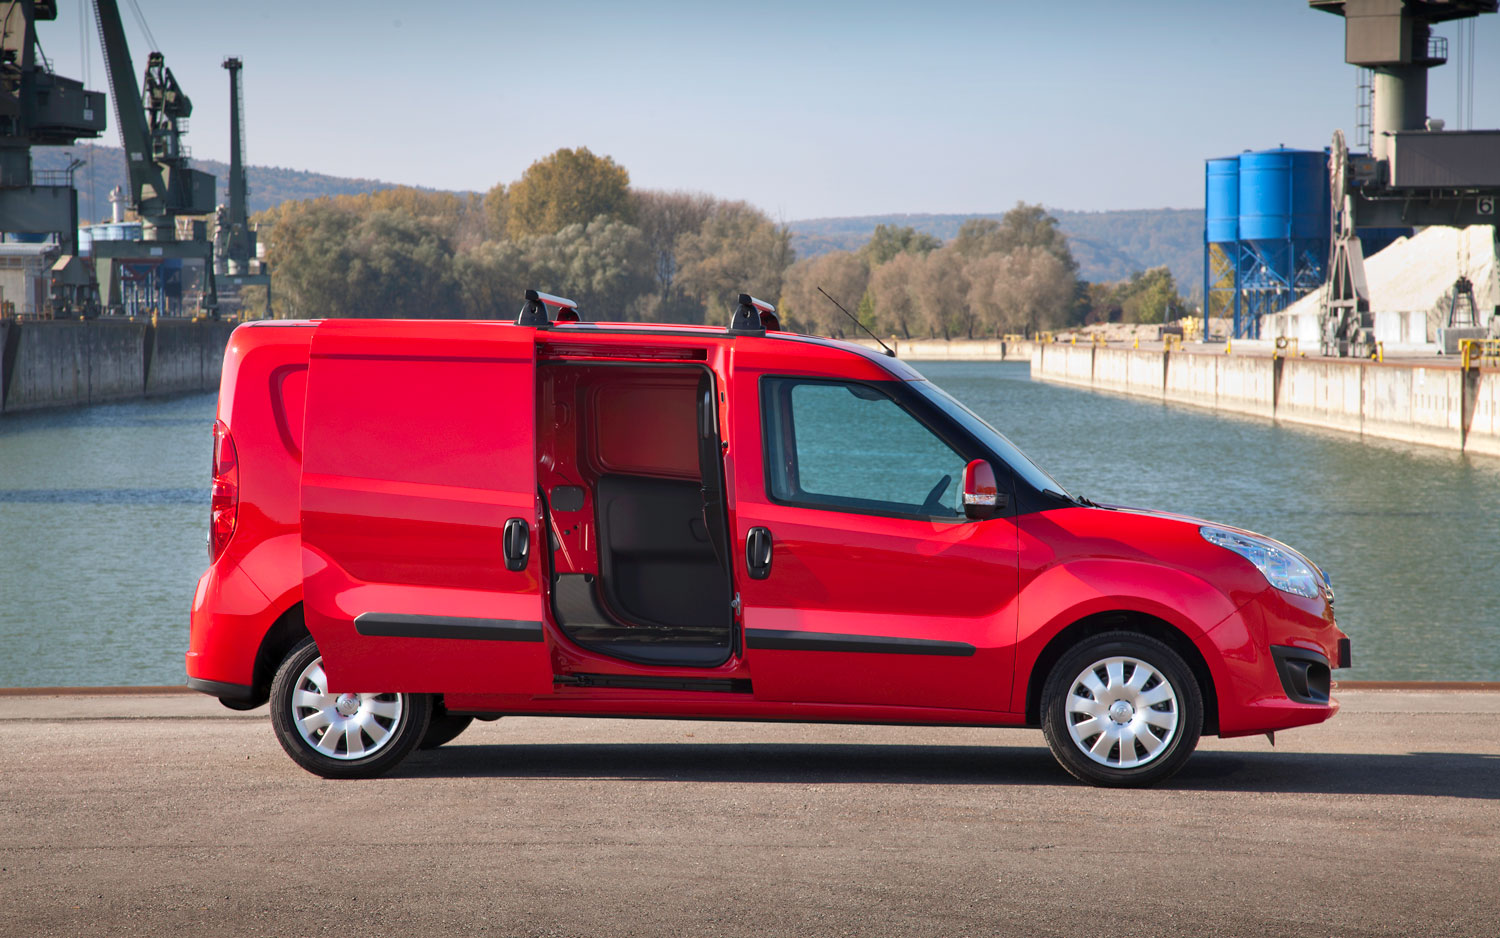 Opel Combo Cargo Side Photos #2423 Wallpaper | hdcarphotos.